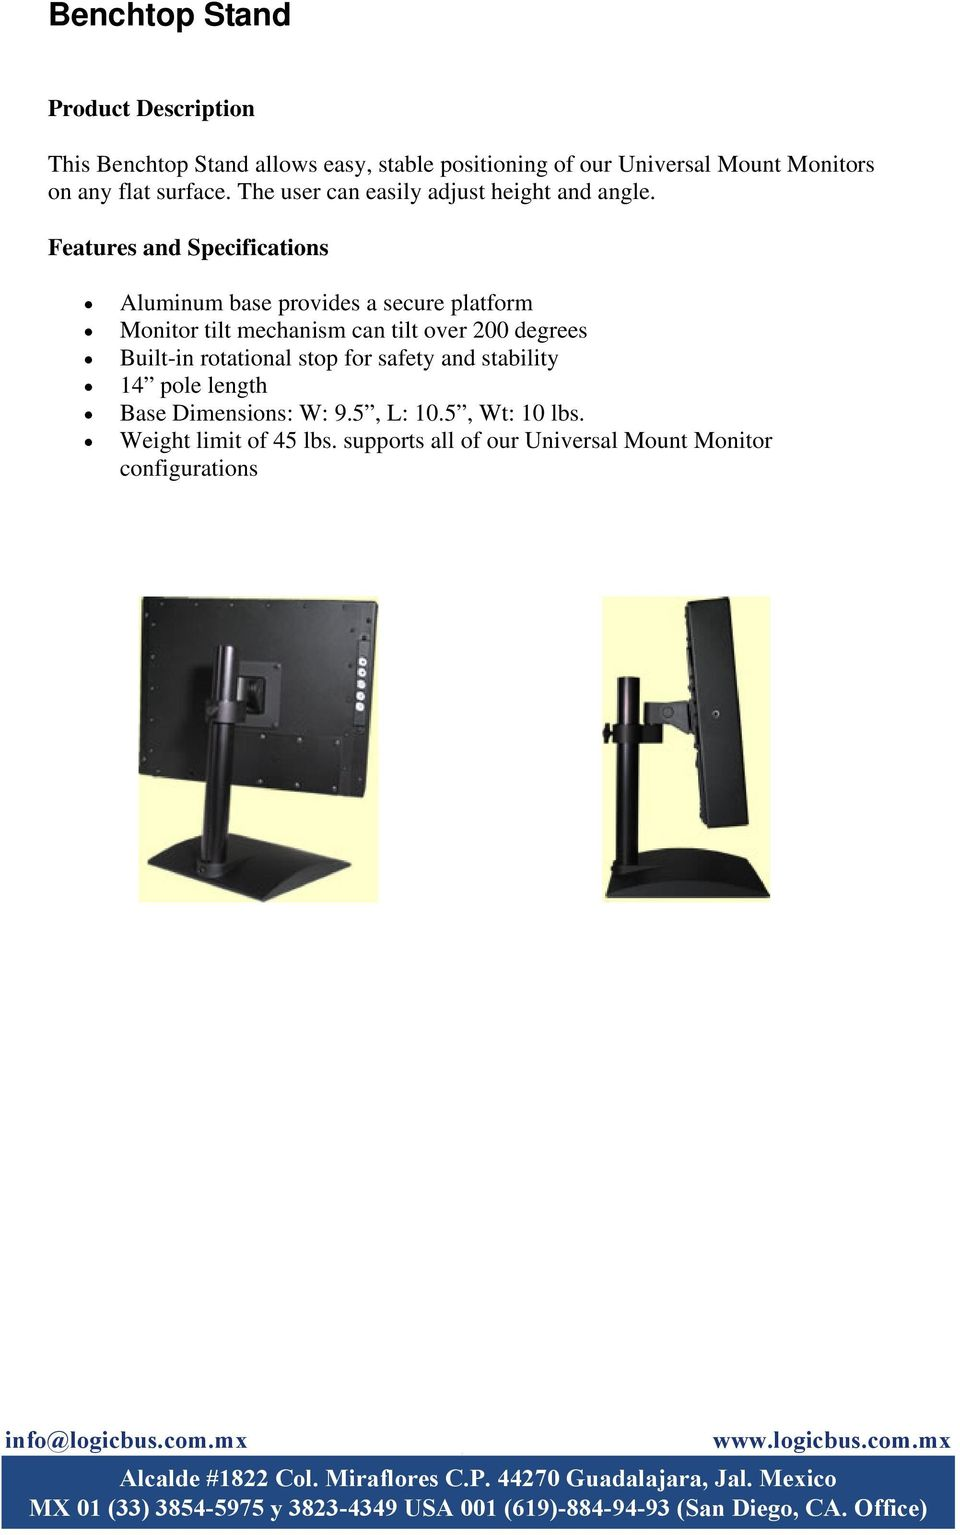 Features and Specifications Aluminum base provides a secure platform Monitor tilt mechanism can tilt over 200 degrees